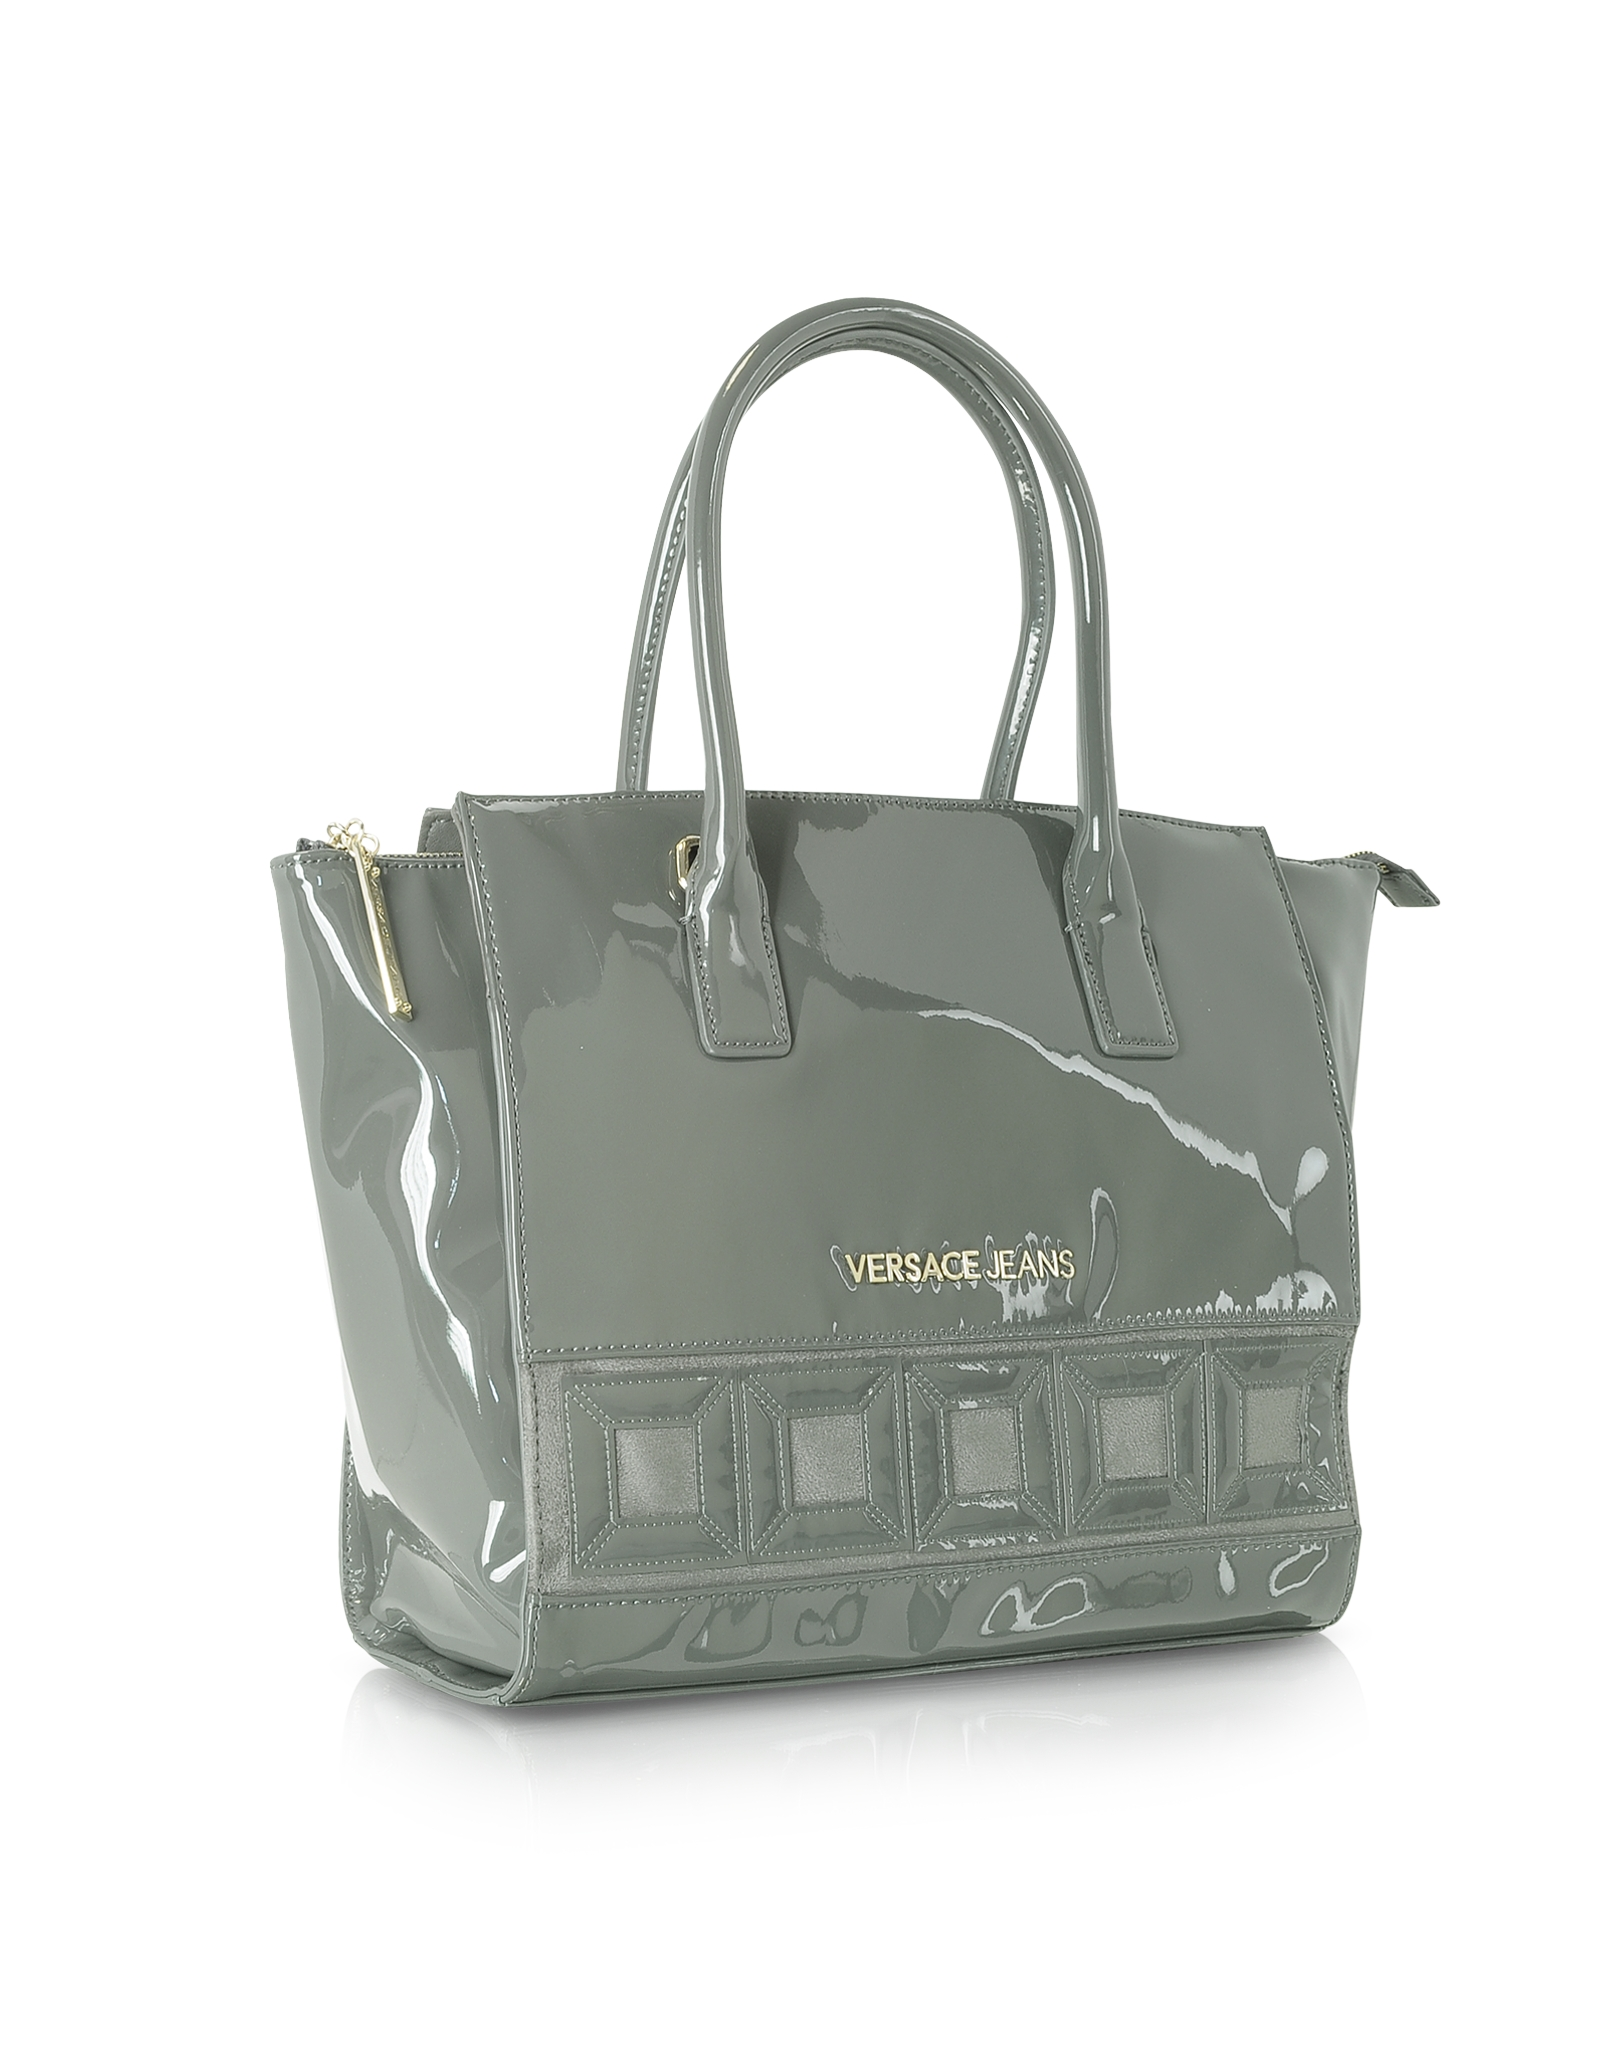 Versace Jeans Patent Eco Leather Tote In Dark Gray in Gray - Lyst 10fe328df0